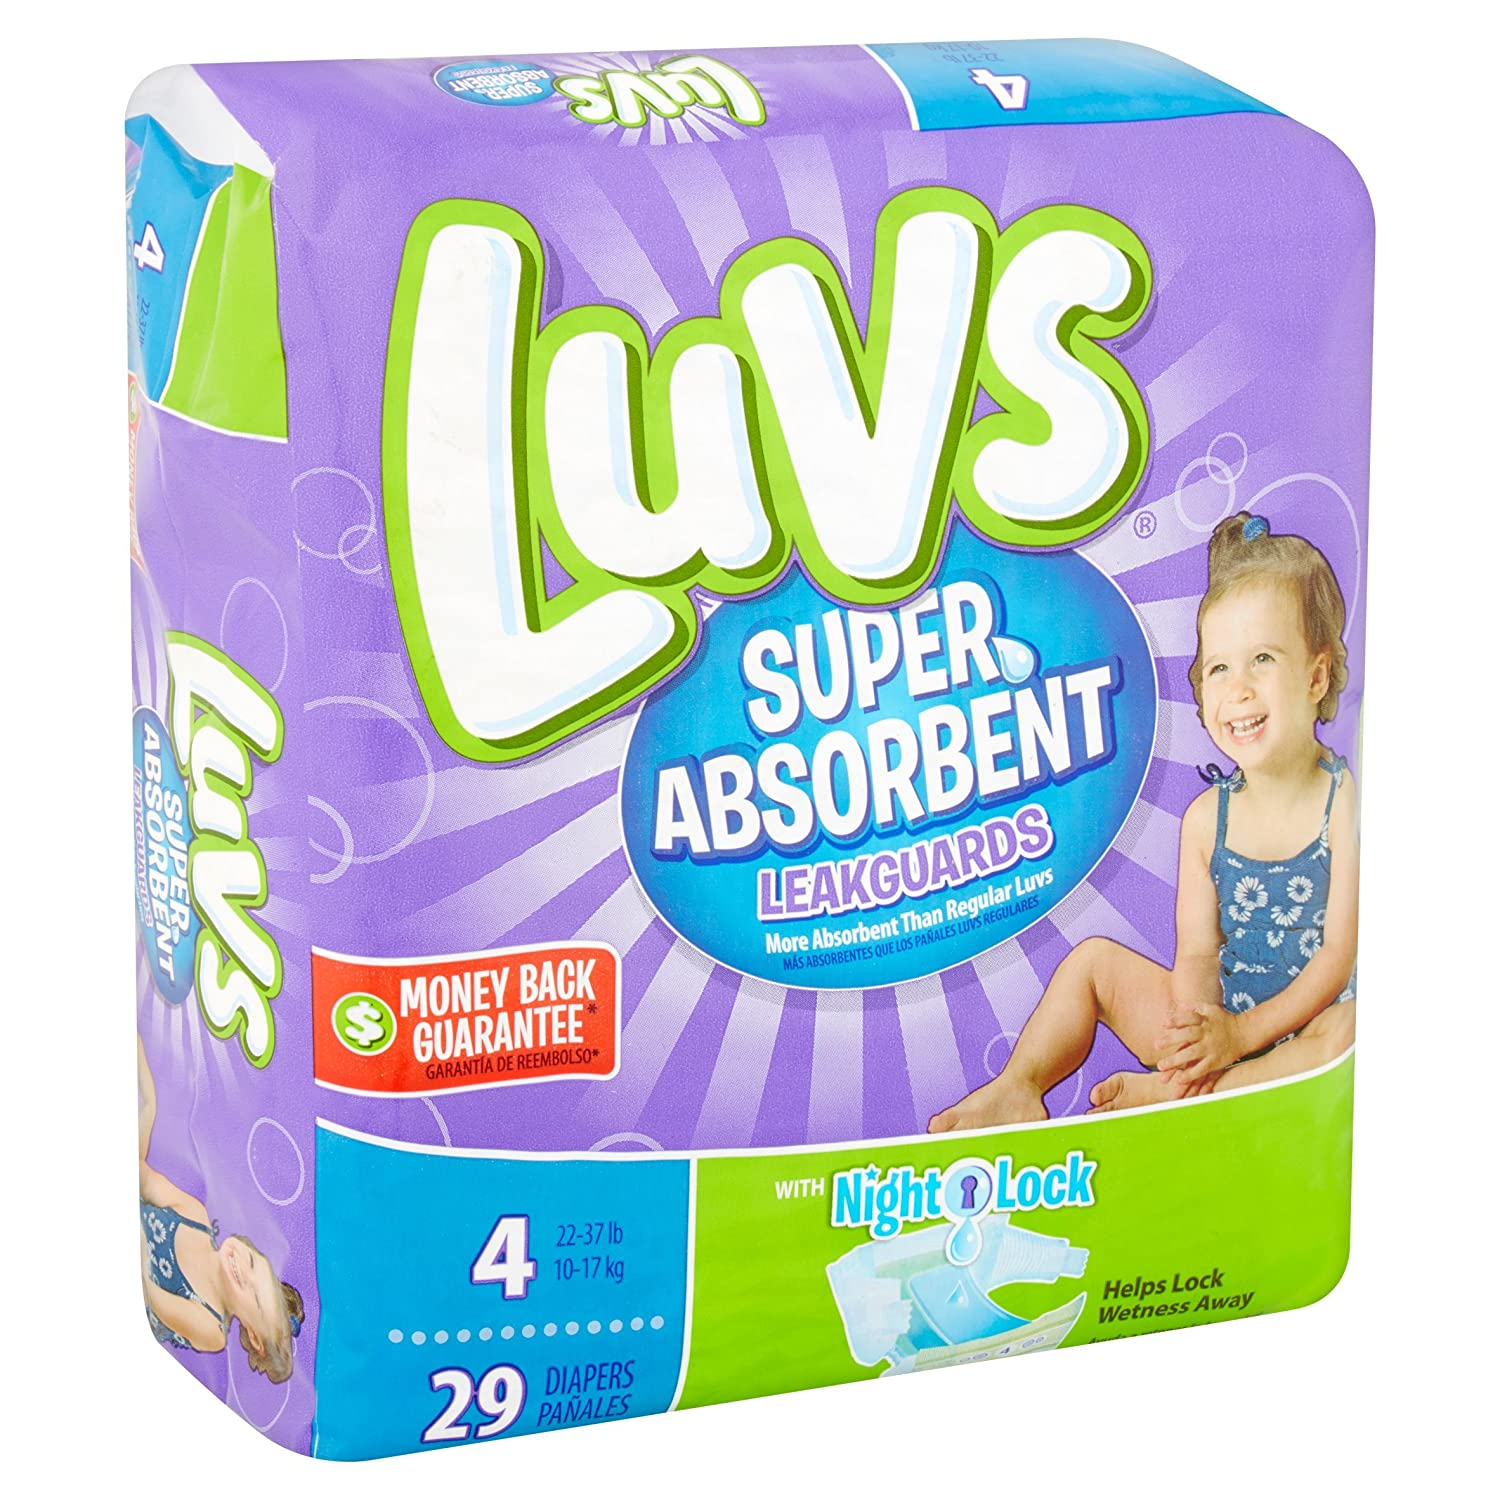 Amazon.com: Branded Luvs Super Absorbent Leakguards Diapers, Size 4, 29 Diapers , Weight 22-37lbs - Branded Diapers with fast delivery (Soft and Comfortable ...